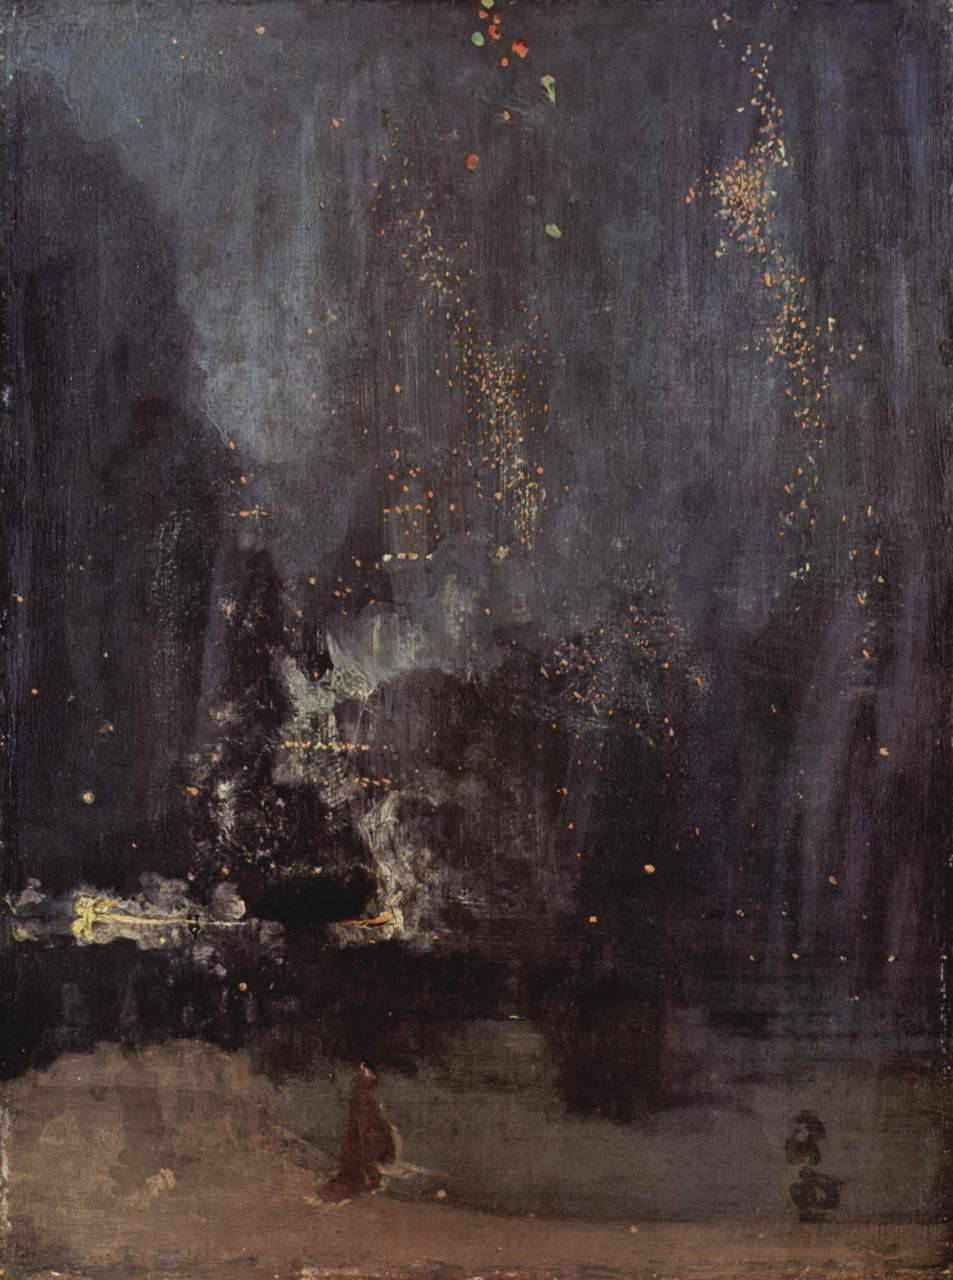 James Abbot McNeill Whistler, Nocturne in Black and Gold: The Falling Rocket Oil on canvas1874